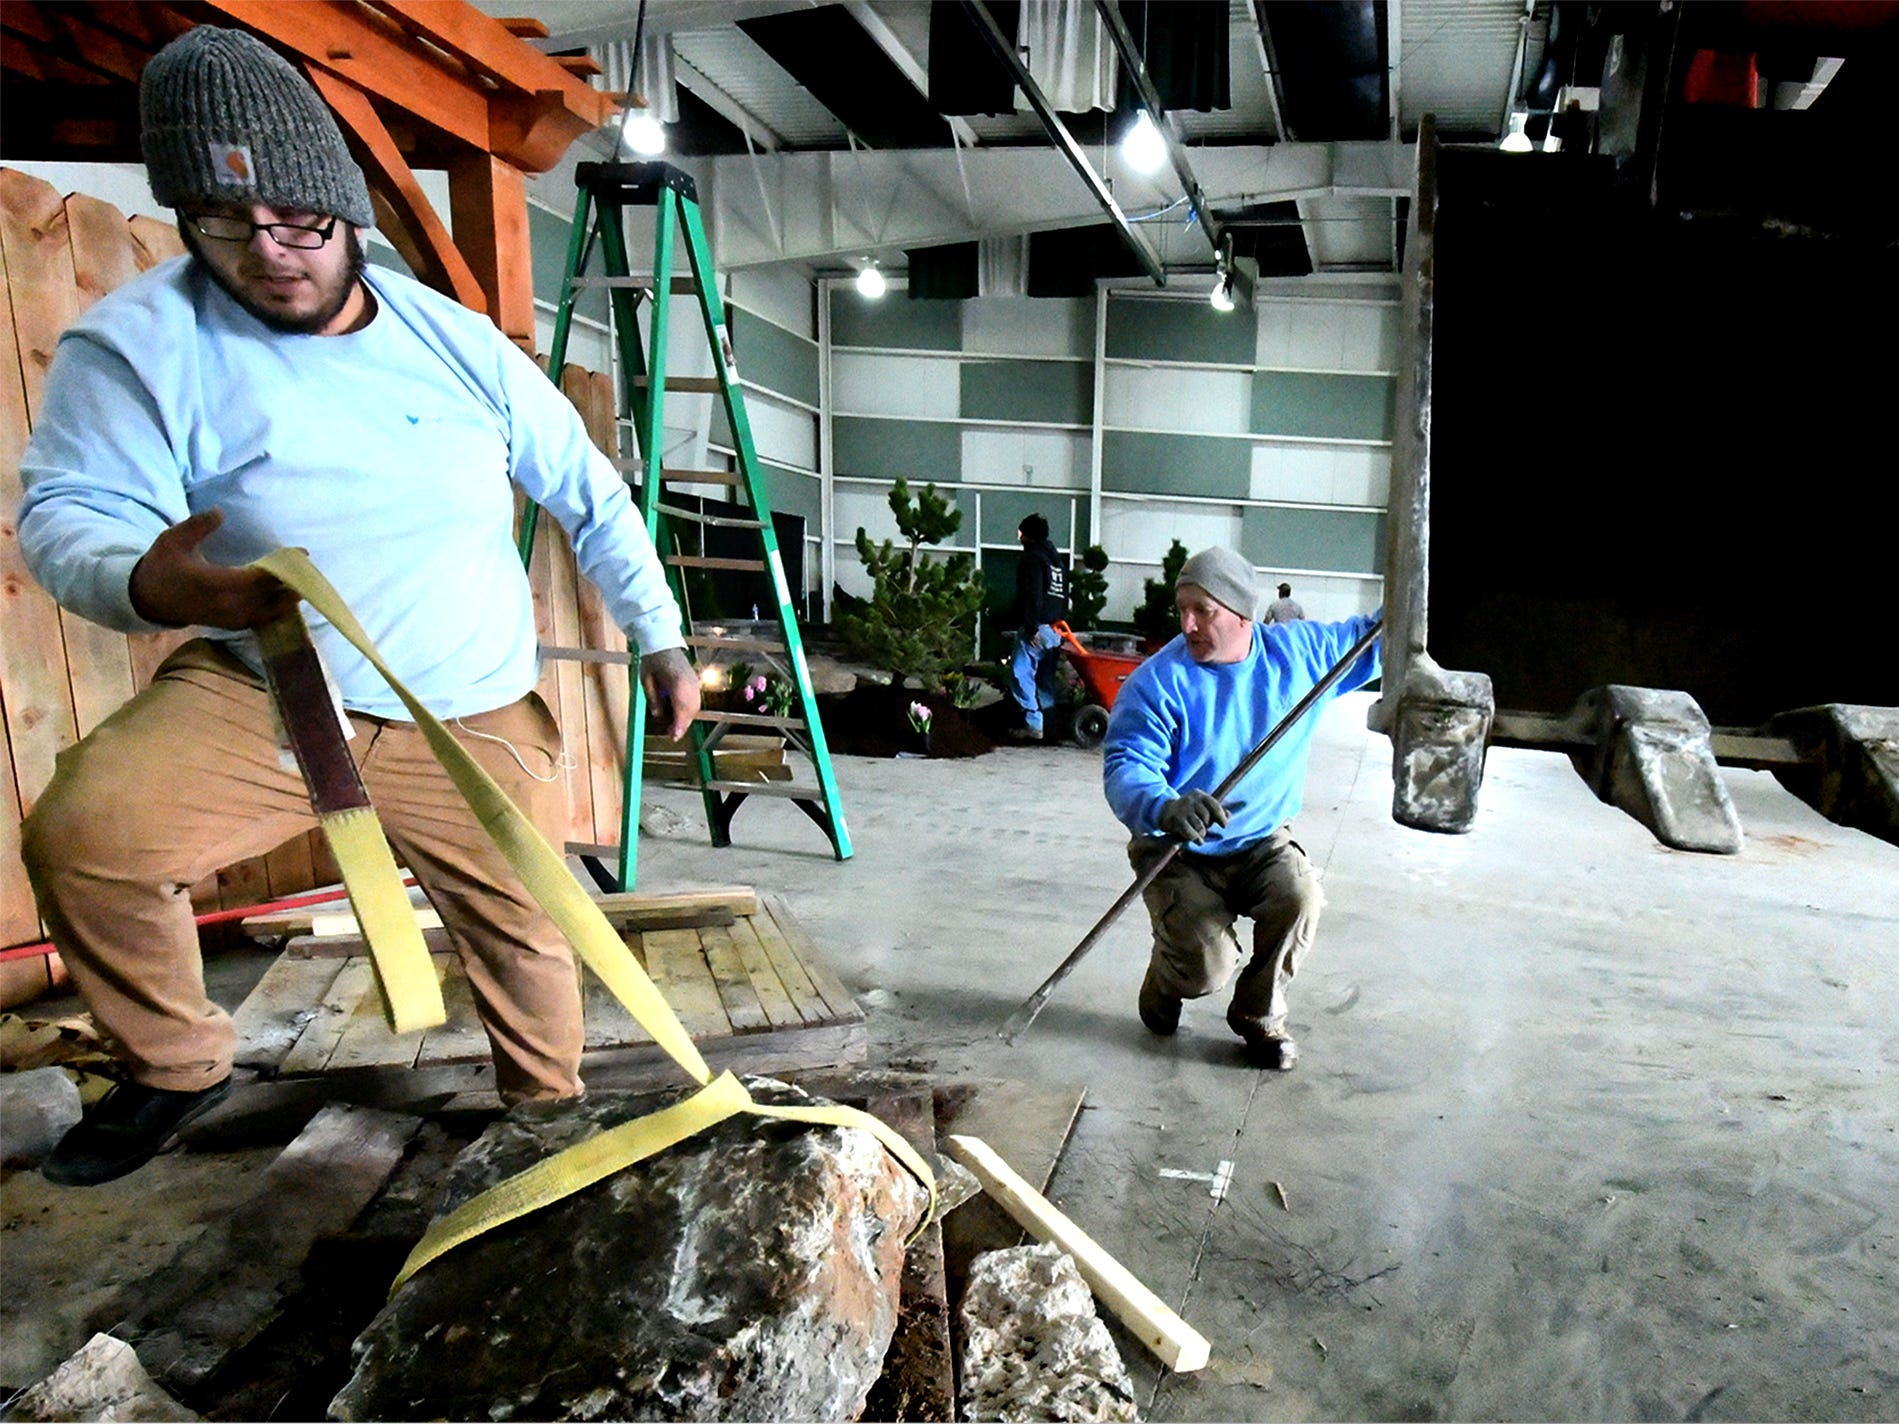 """Songbird Ponds employee Roy Martinez, left, and owner Roger Sears prepare to place landscape boulders at the company's exhibit at the PA Garden Show of York Wednesday, Feb. 27, 2019. The show, themed """"Flowers on Parade,"""" is in Memorial Hall at the York Expo Center March 1-3. Hours Friday and Saturday are 10 a.m. to 8 p.m., and Sunday 10 a.m. to 5 p.m. Admission for adults is $10. Children are free with multi-day passes and and senior discounts offered. Bill Kalina photo"""